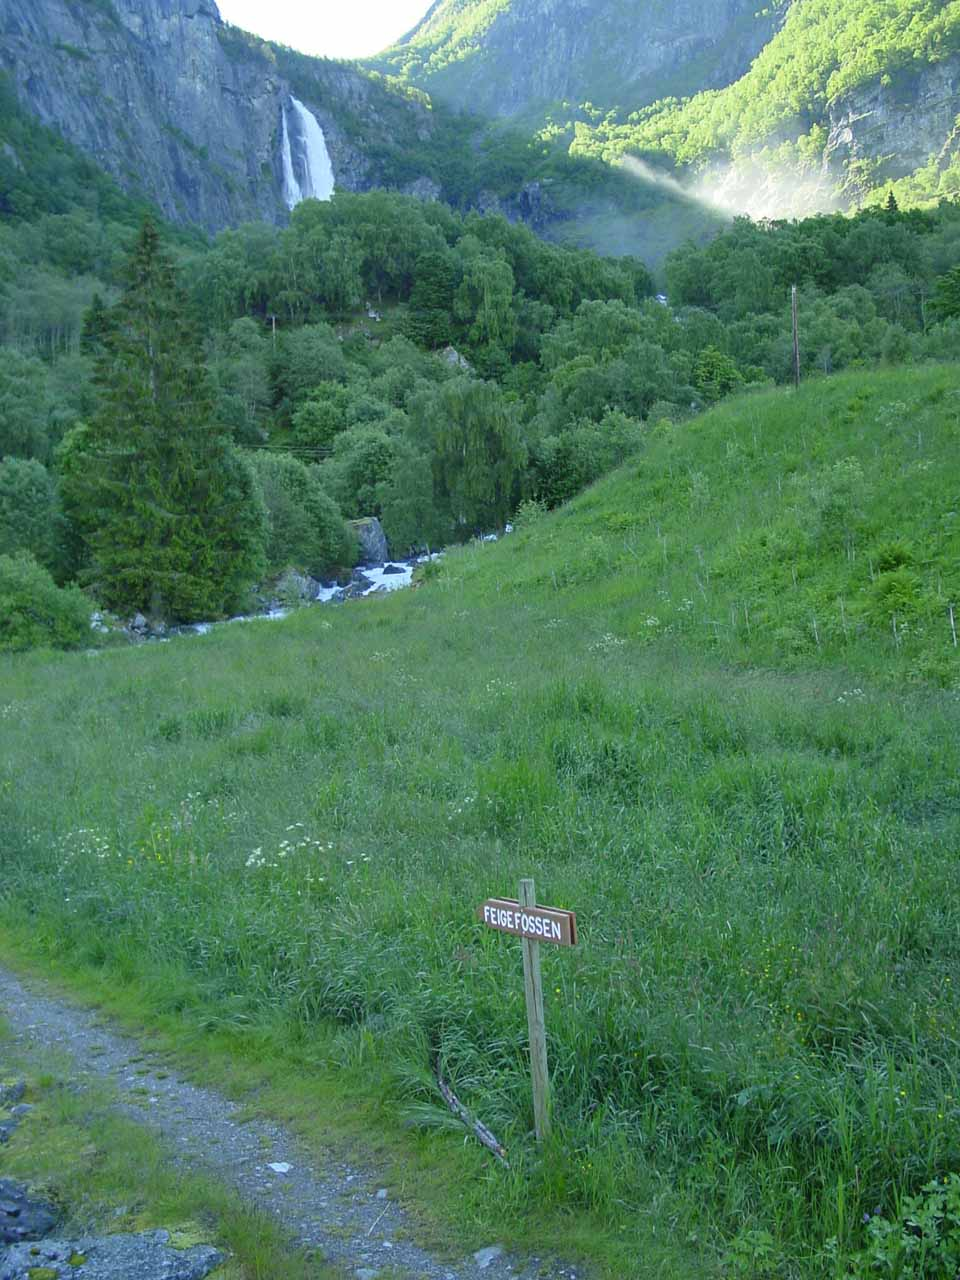 At the official trail to Feigefossen after about 300m of walking along the road